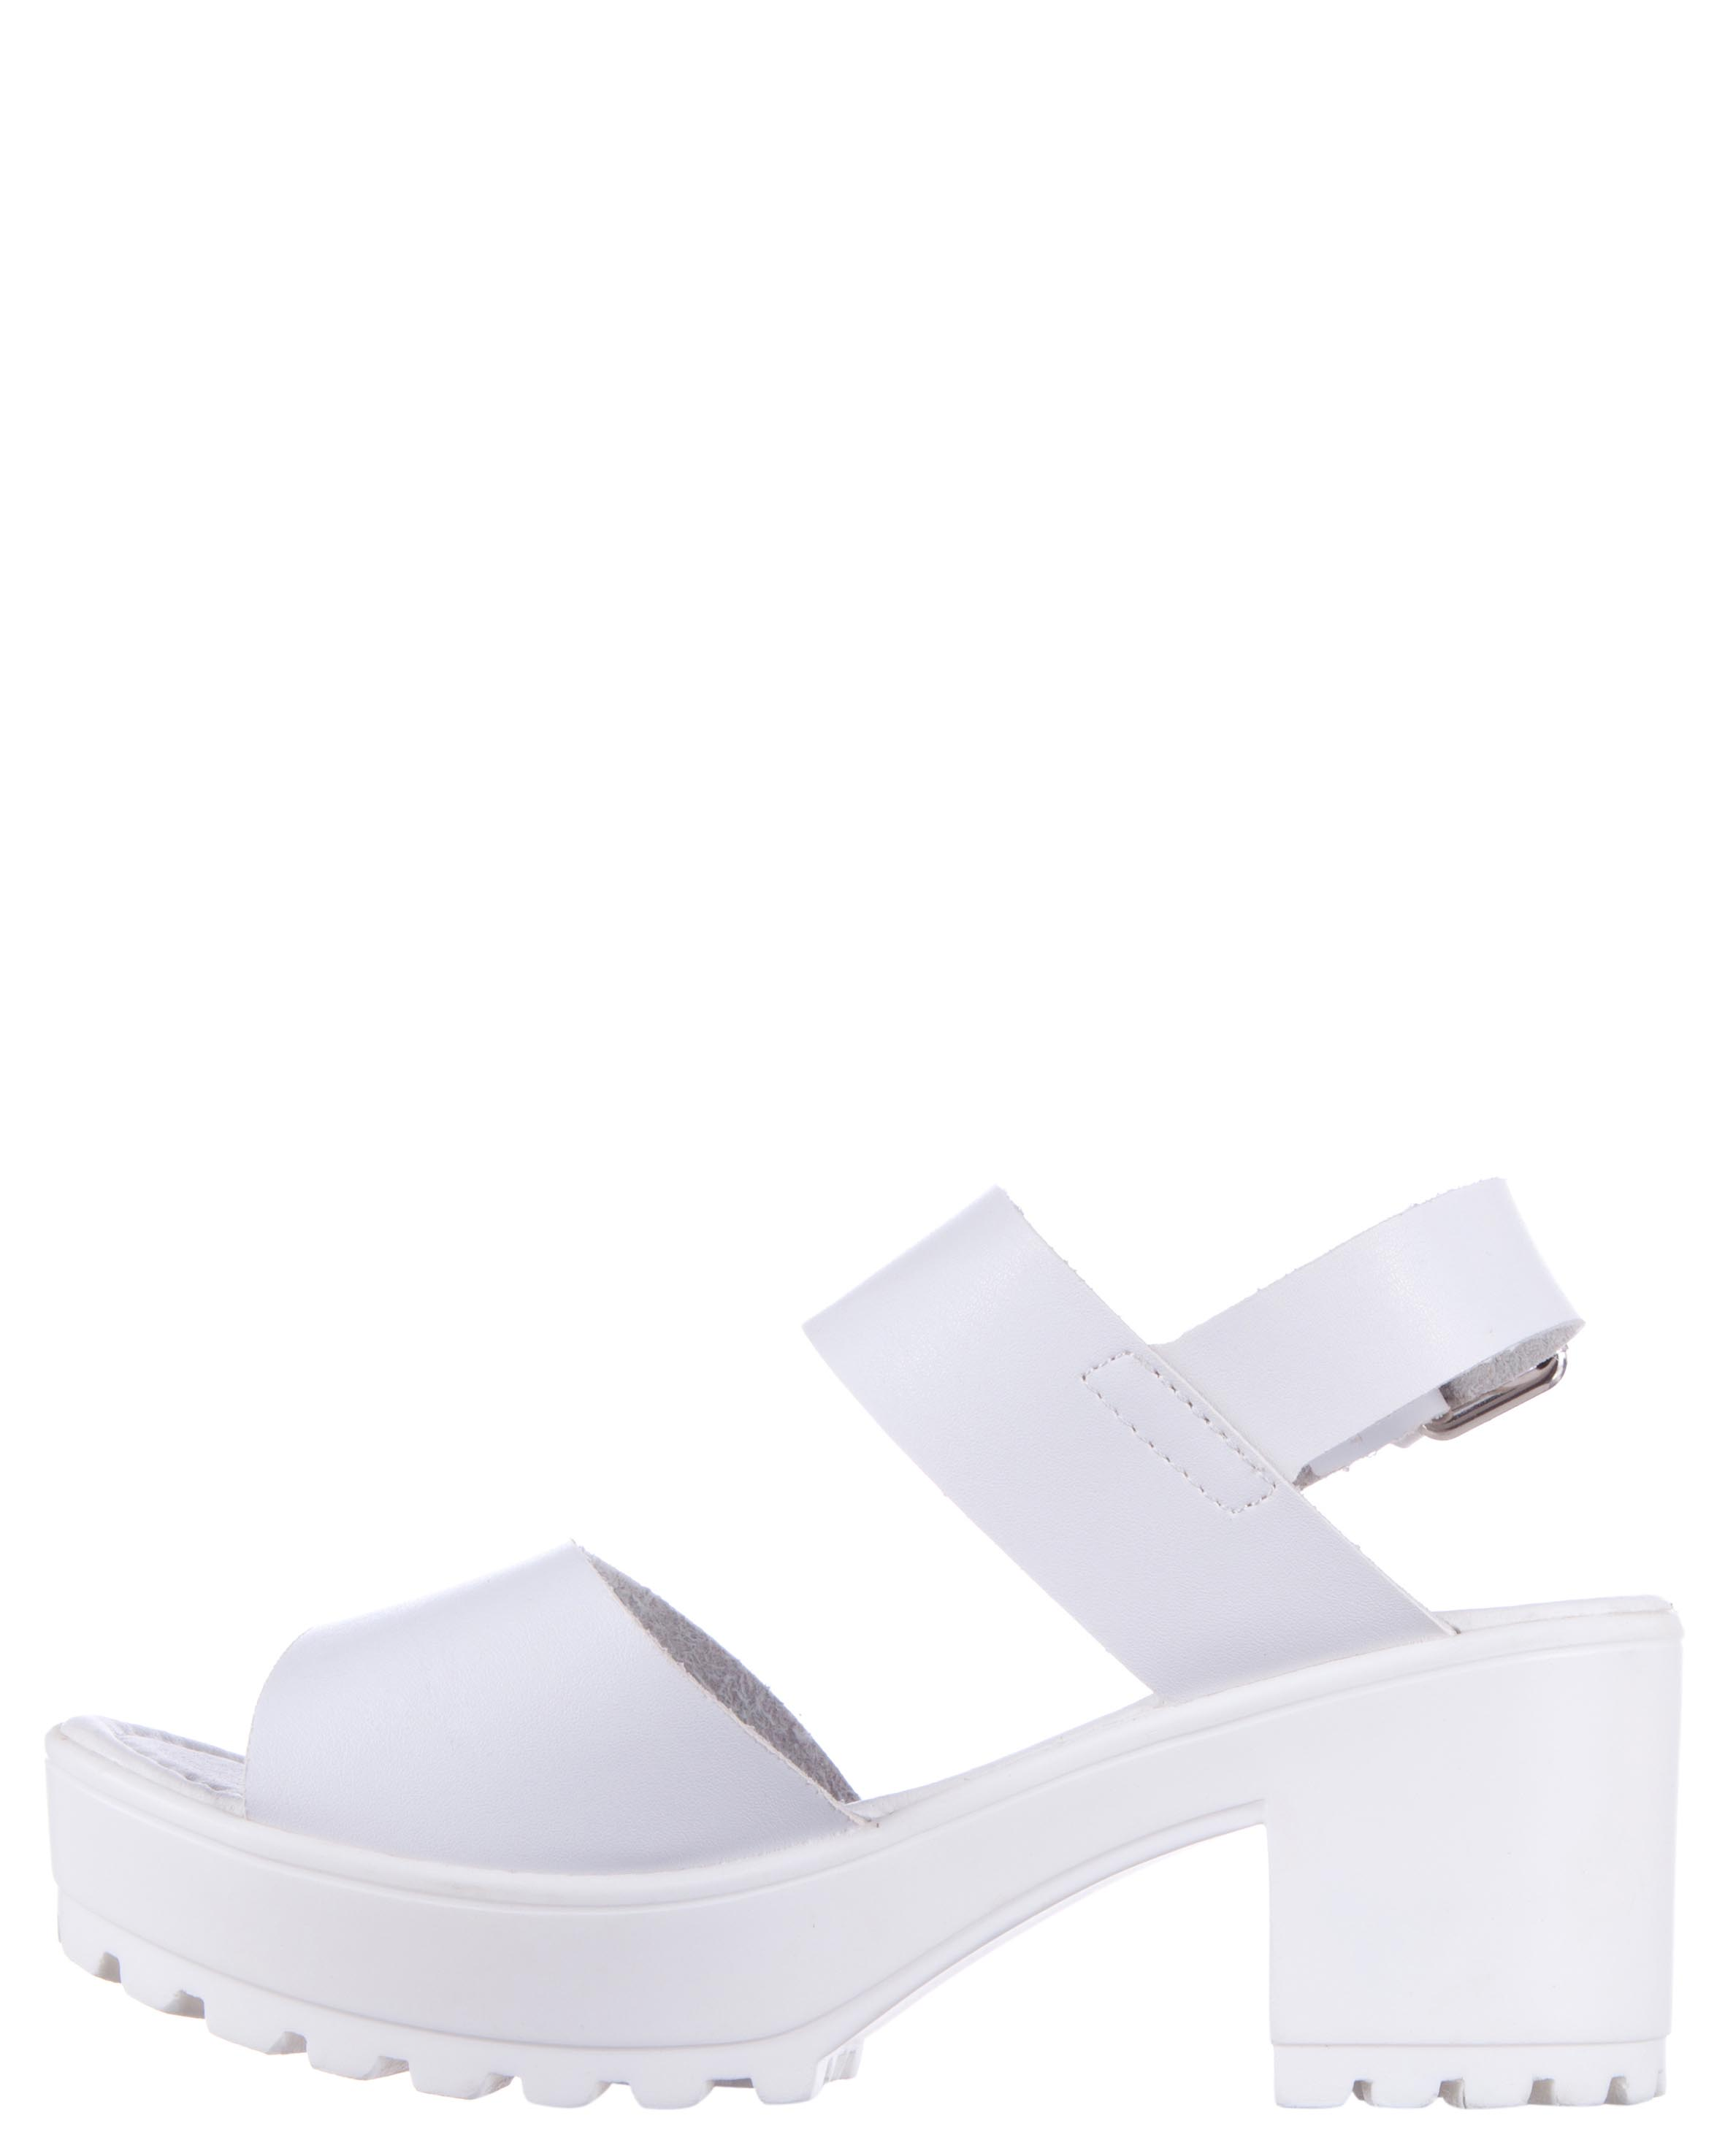 White sandals rubi shoes - Charlie Heels By Rubi Shoes Online The Iconic Australia